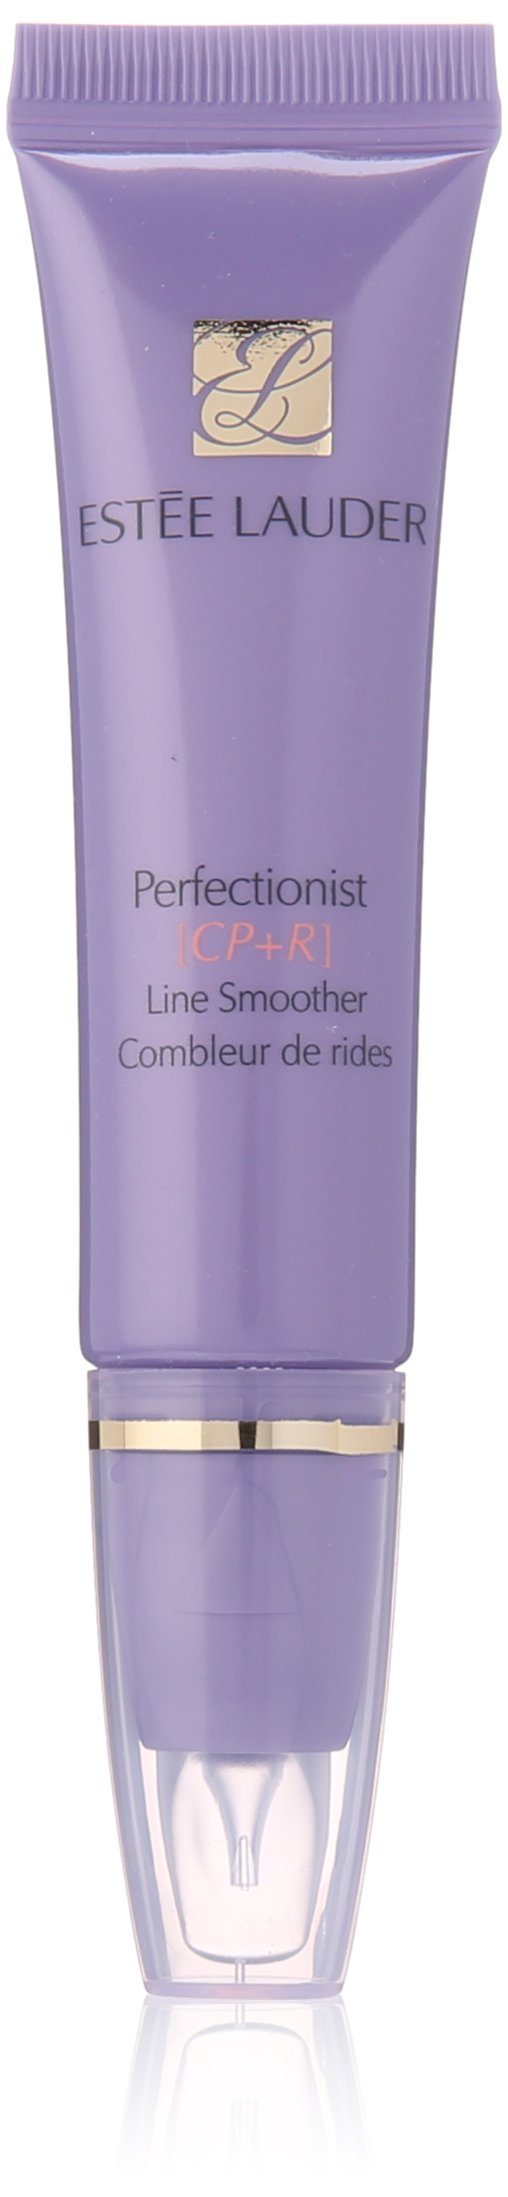 Estee Lauder Perfectionist Line Smoother Treatment for Women, 0.5 Ounce